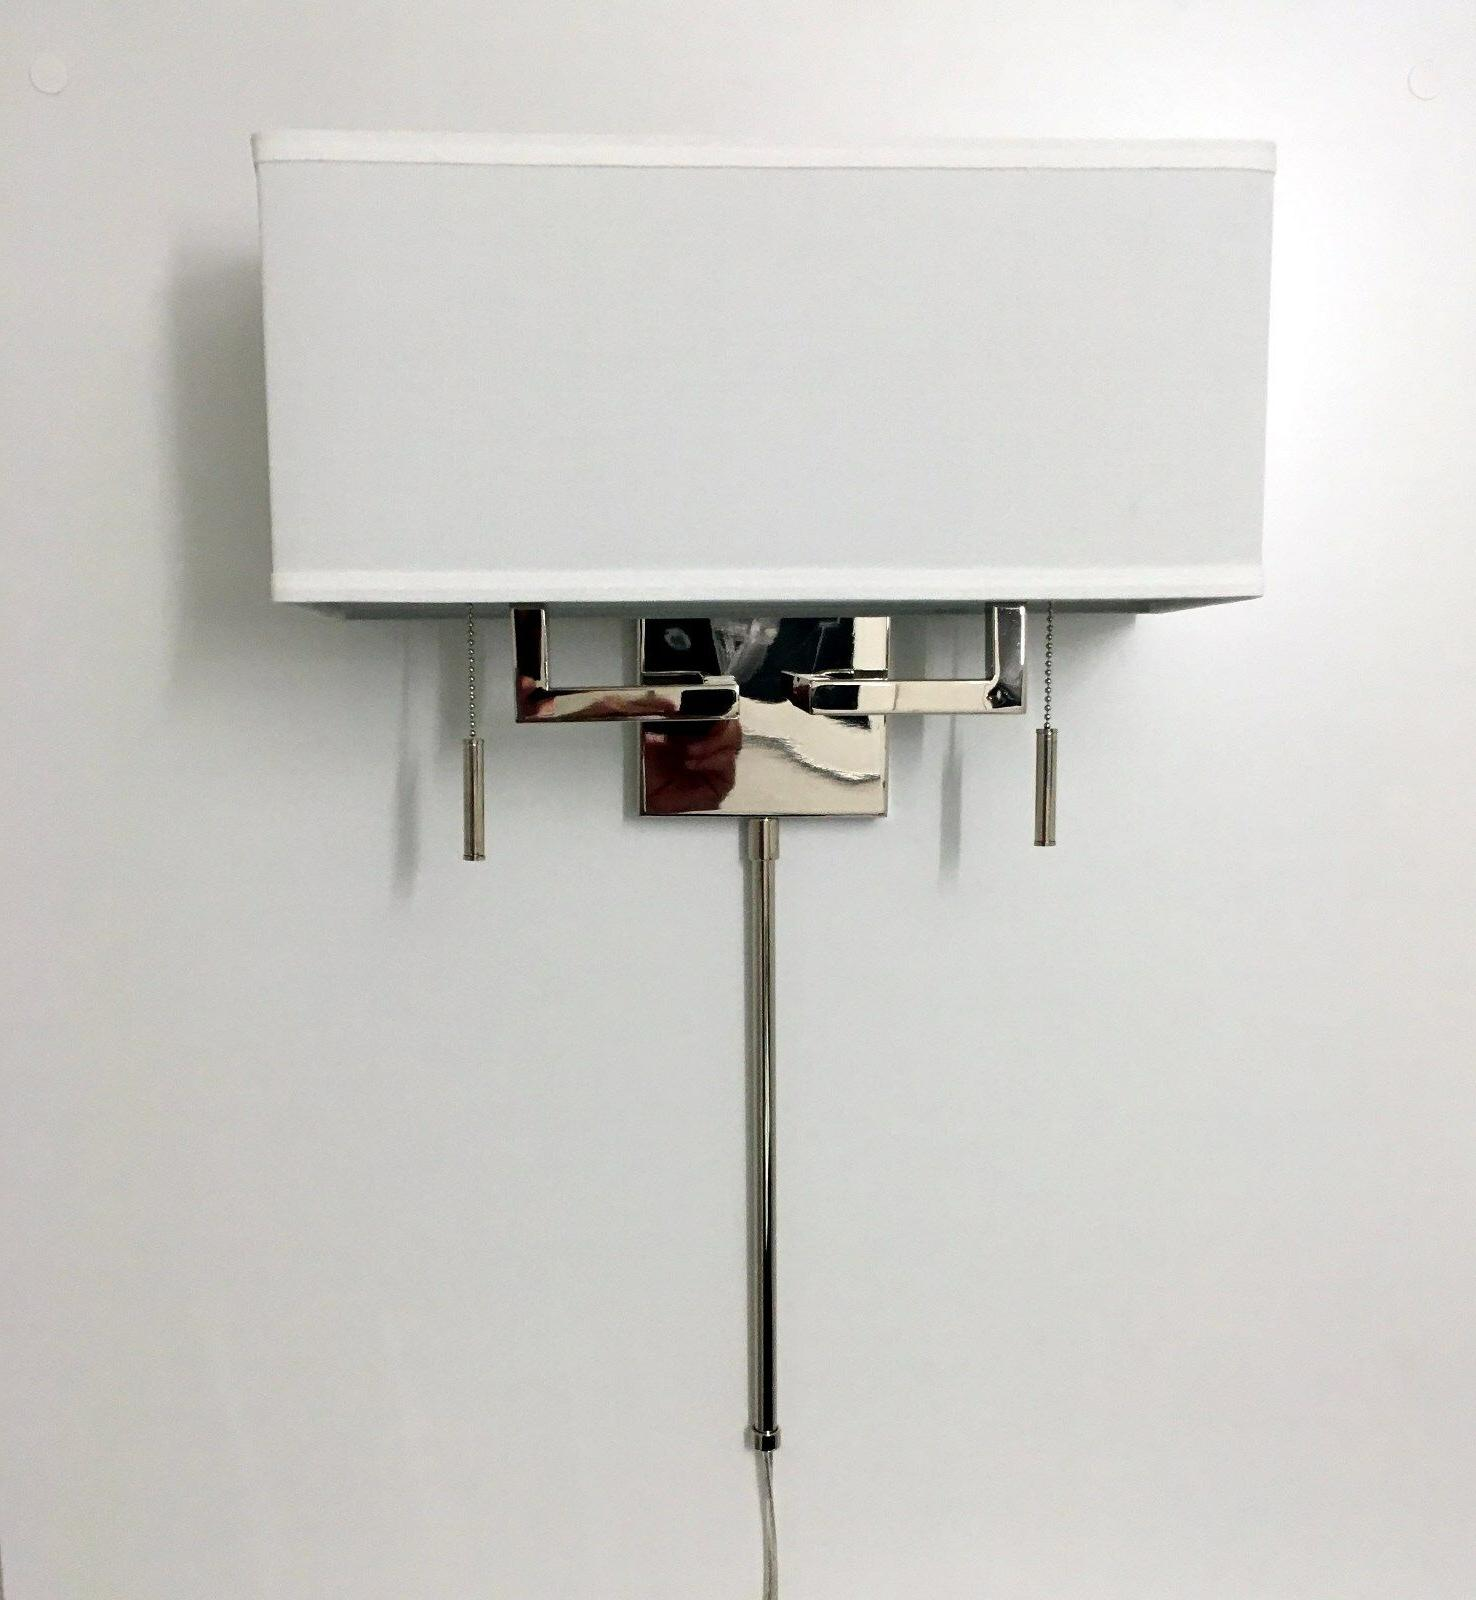 Polished Nickel Modern Wall Sconce Light with Rect.Shade, Ha